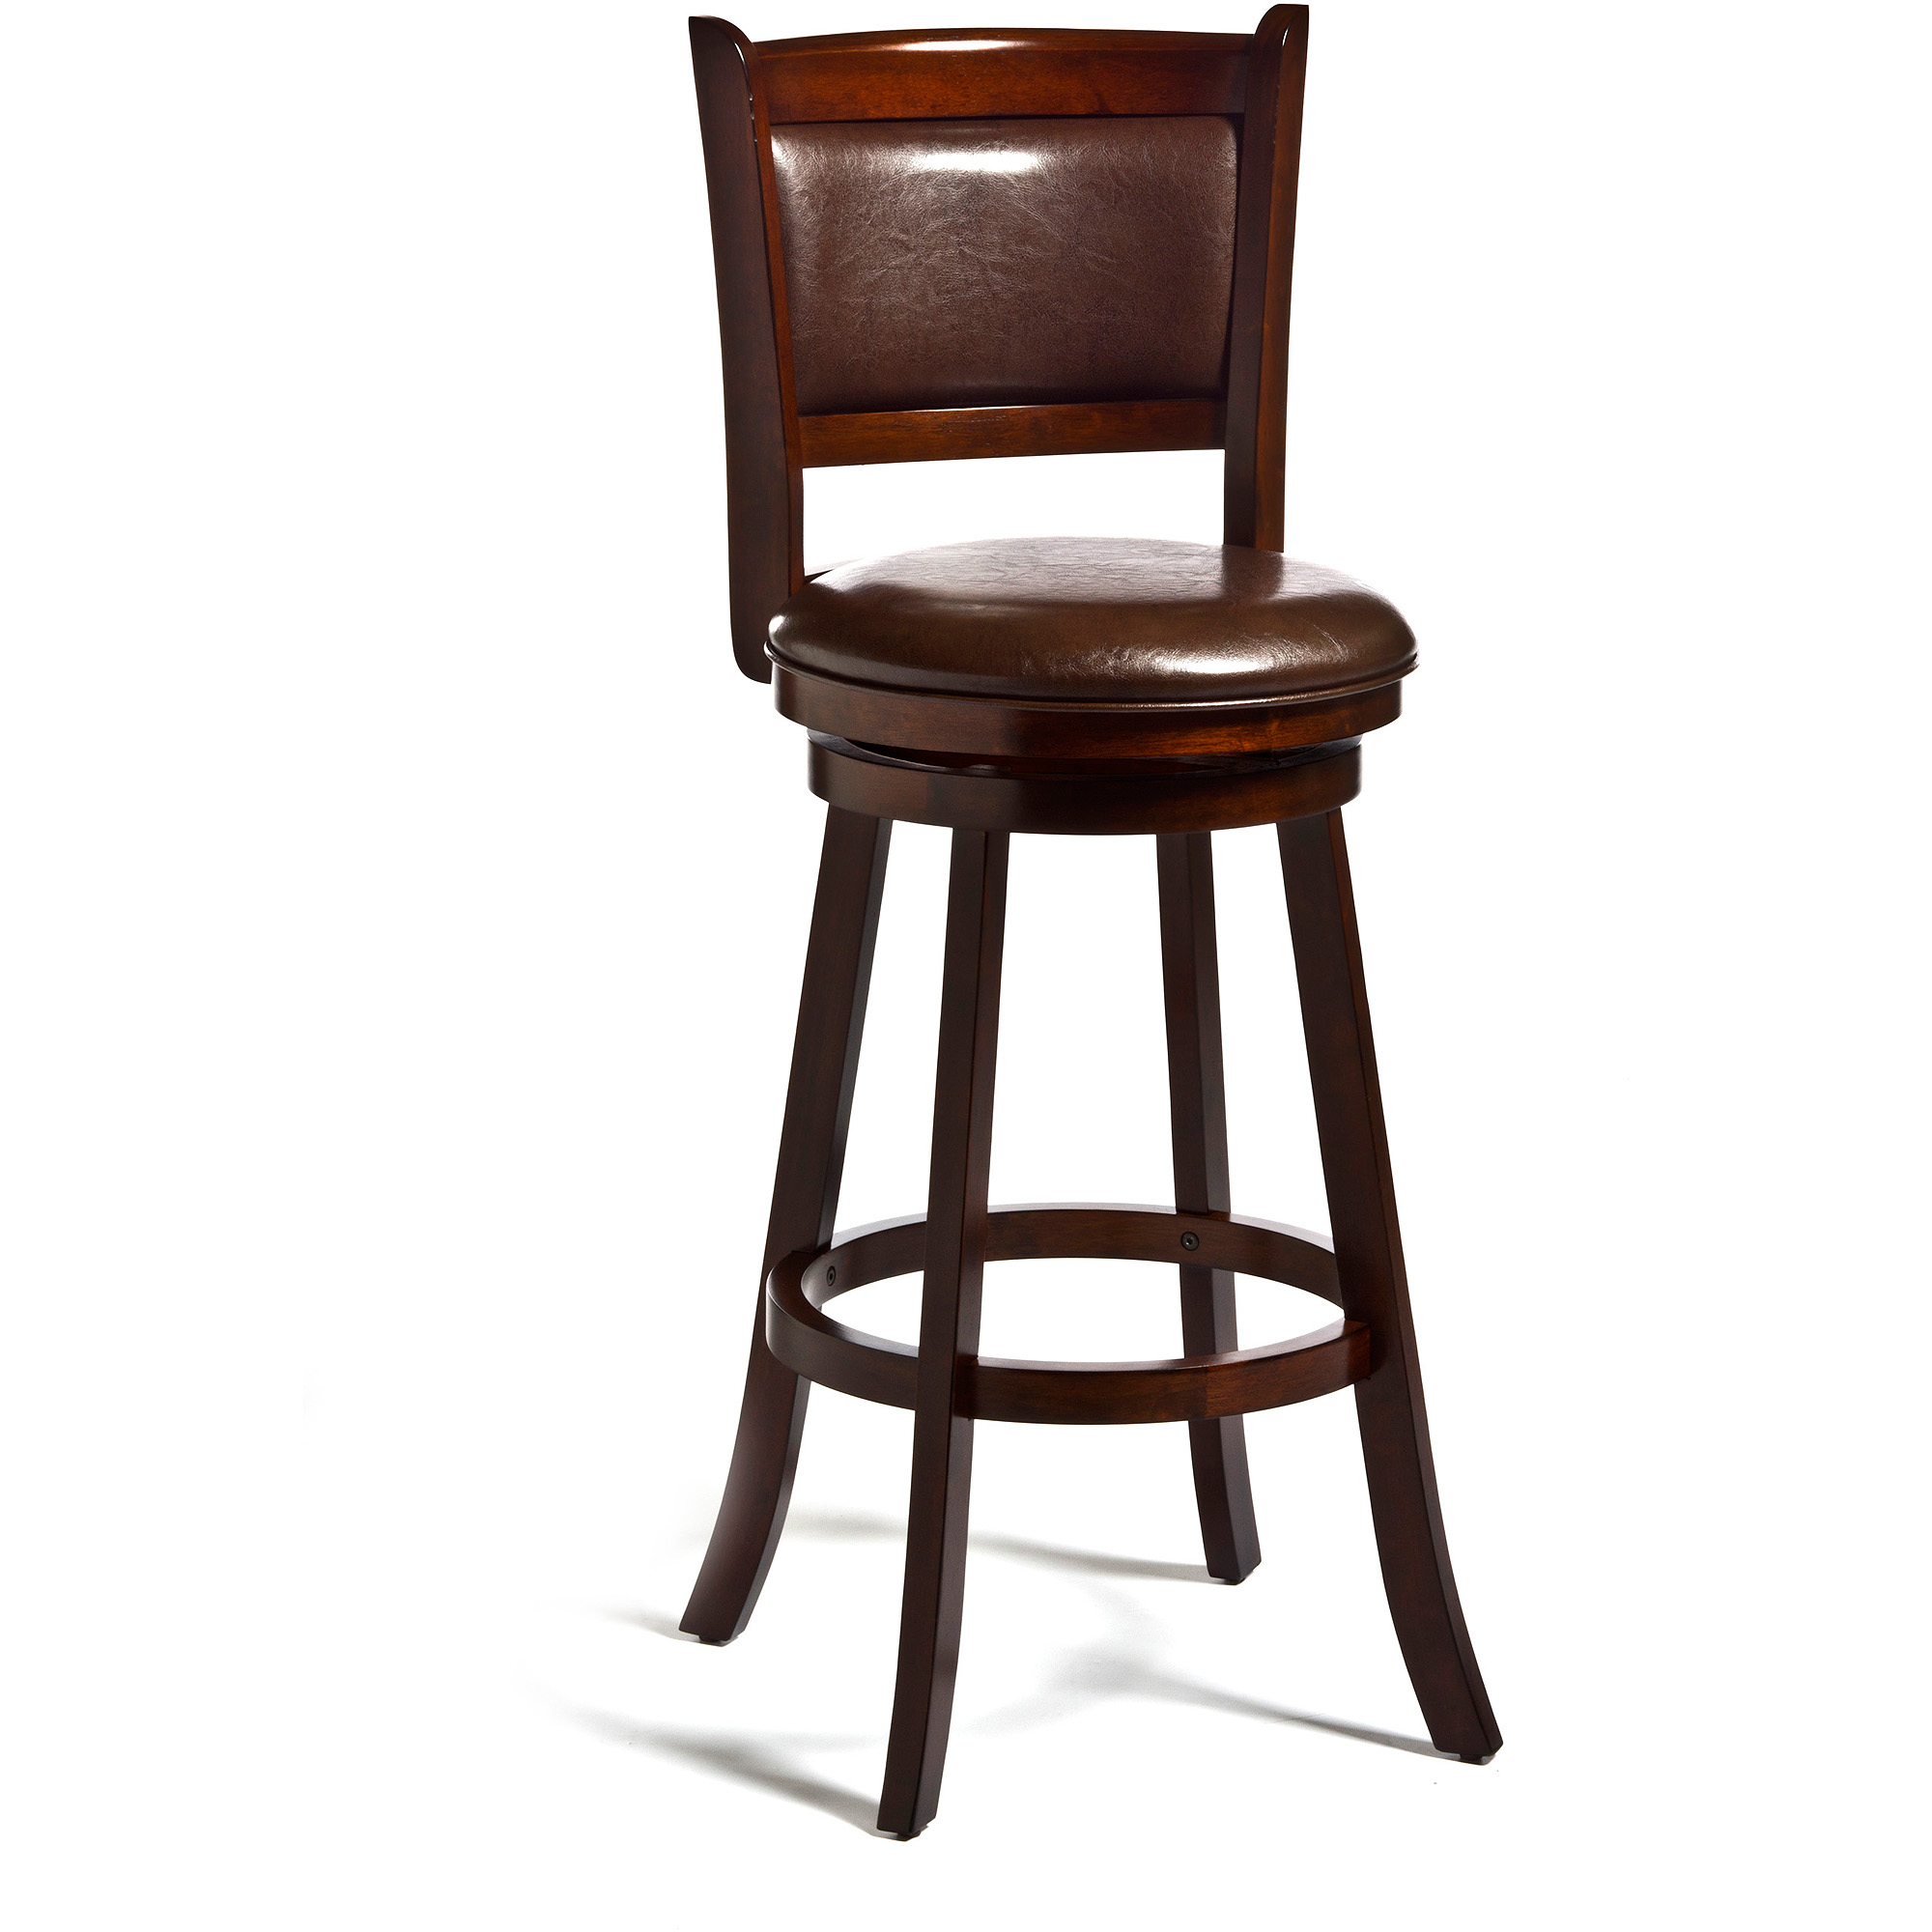 Dennery Swivel Counter Stool by Hillsdale Furniture LLC